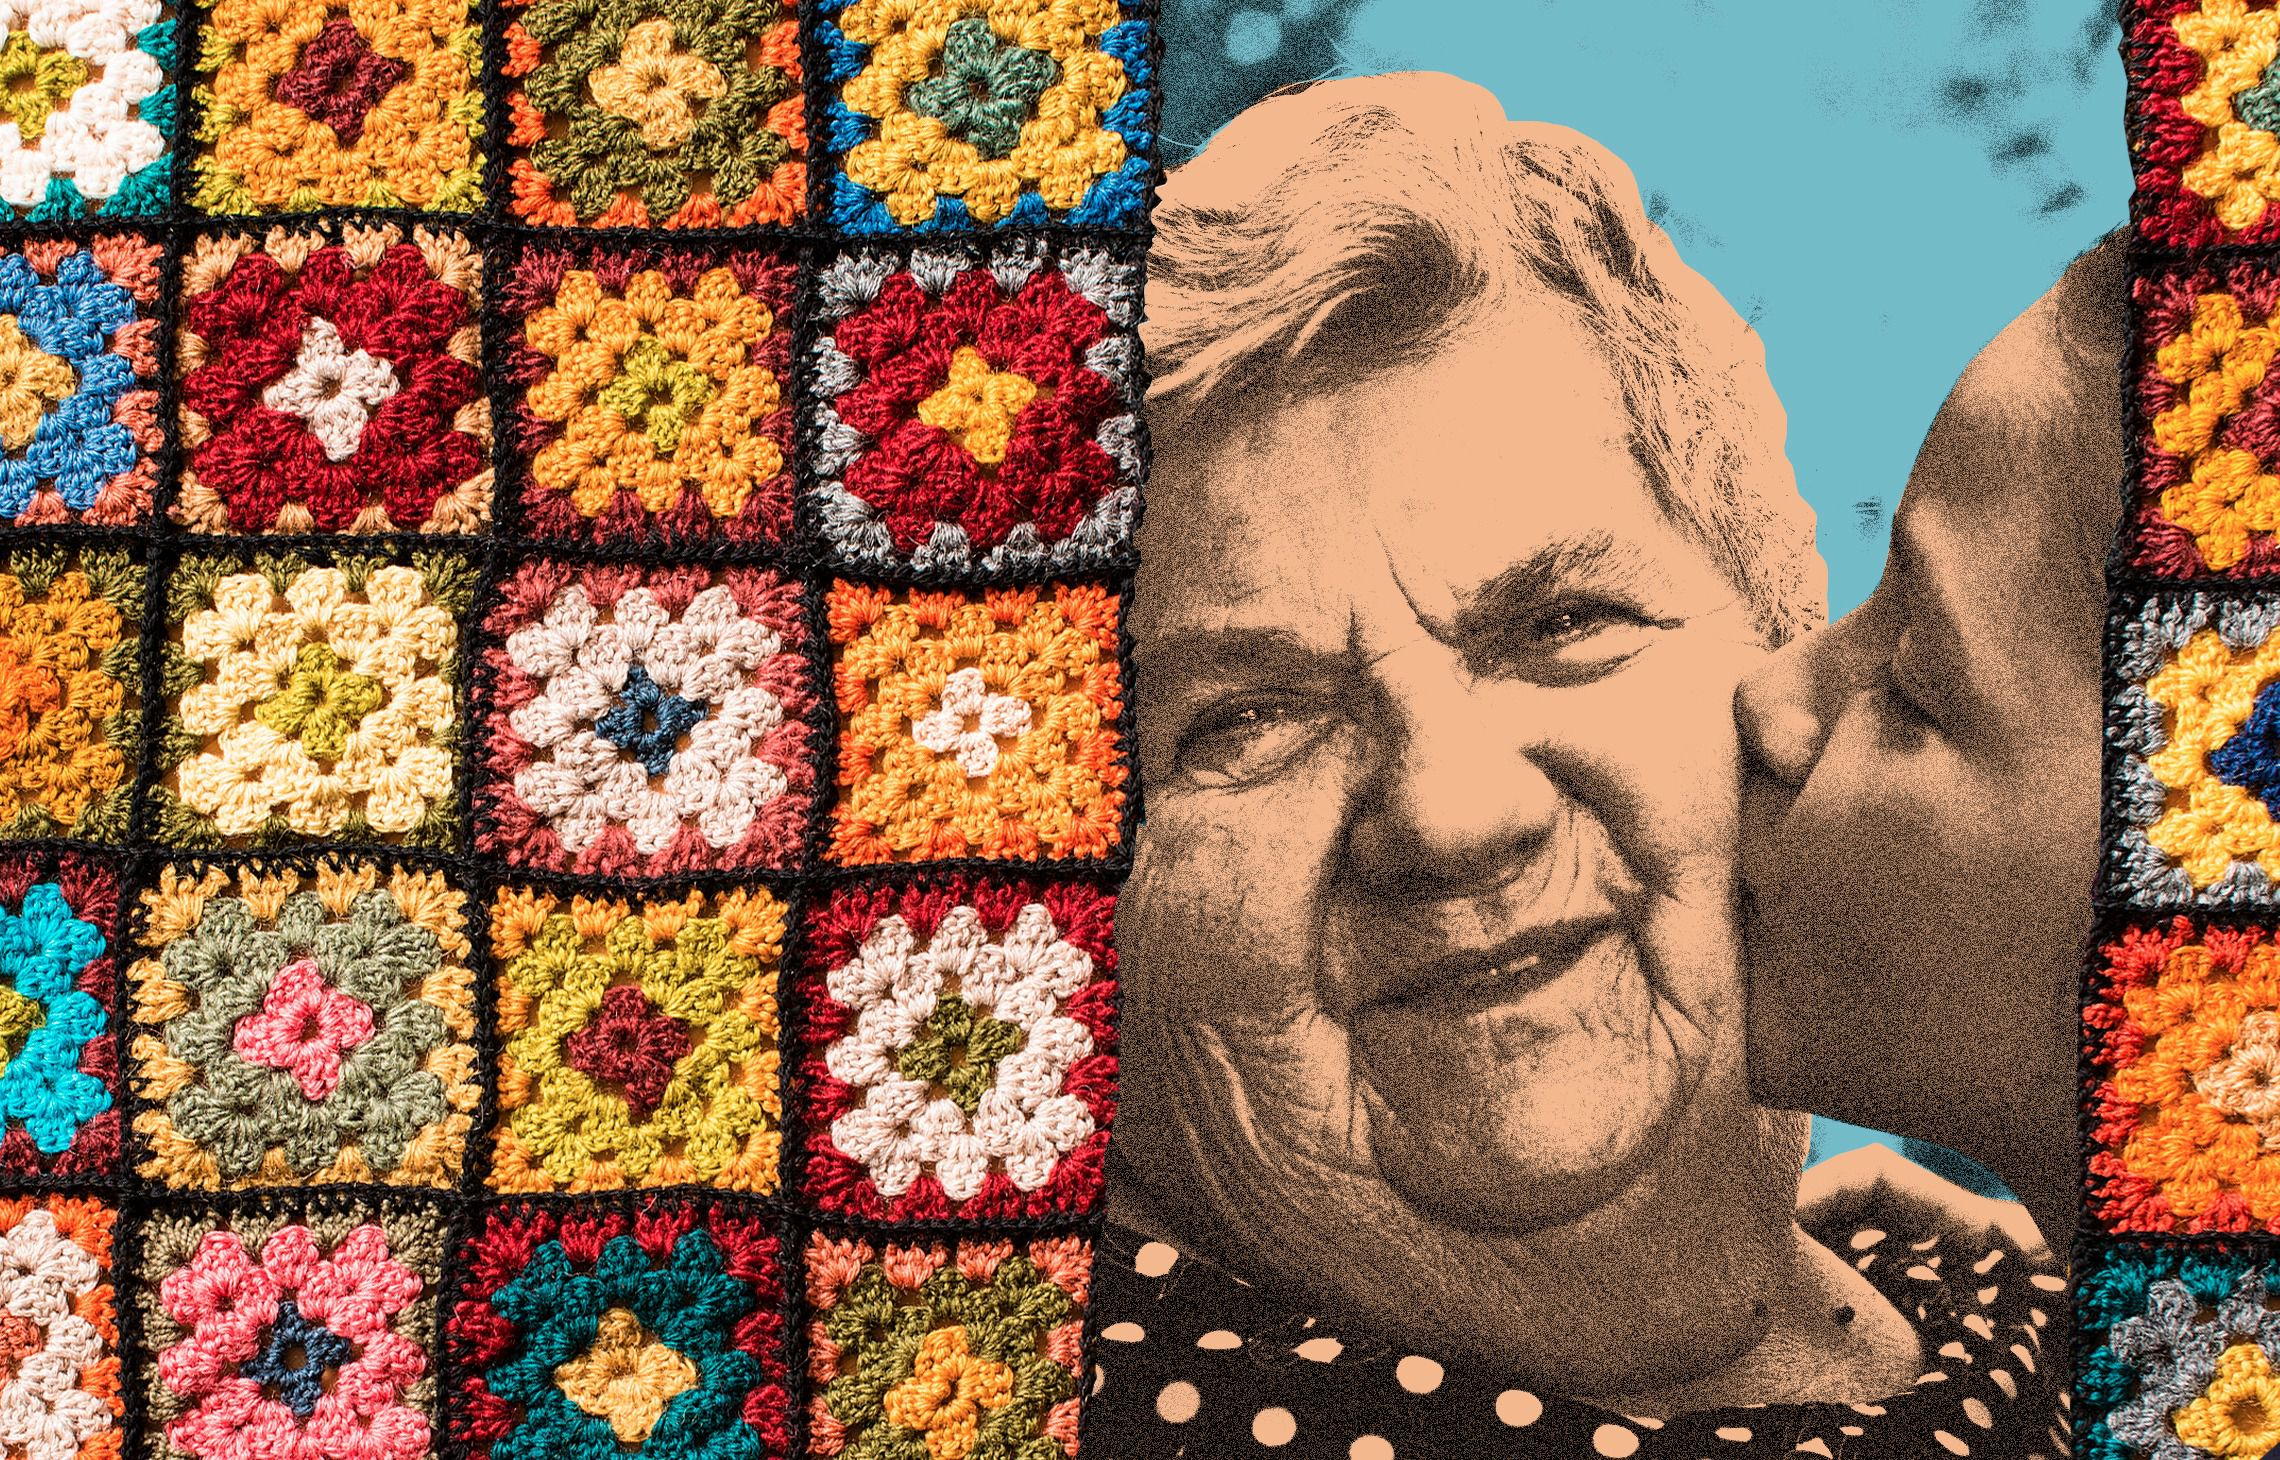 How Knitting Made My Grandmother A Grandma  The Forward How Knitting Made My Grandmother A Grandma Sample Argumentative Essay High School also Cover Letter Writing Services Uk  An Essay On Science